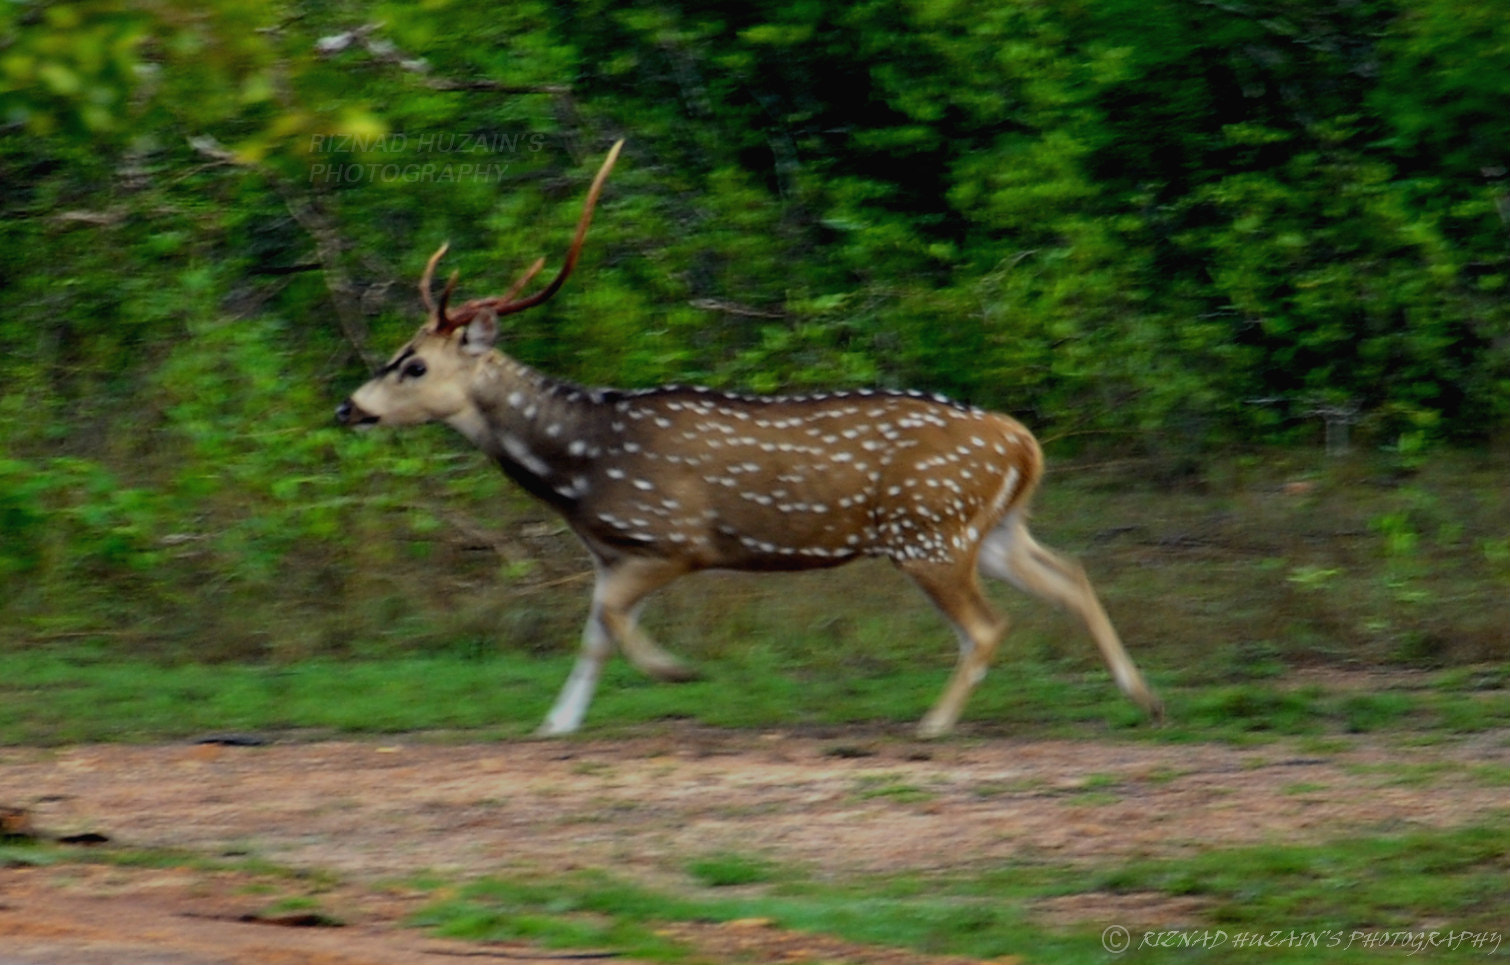 Photograph Spotted Deer by Riznad Huzain on 500px